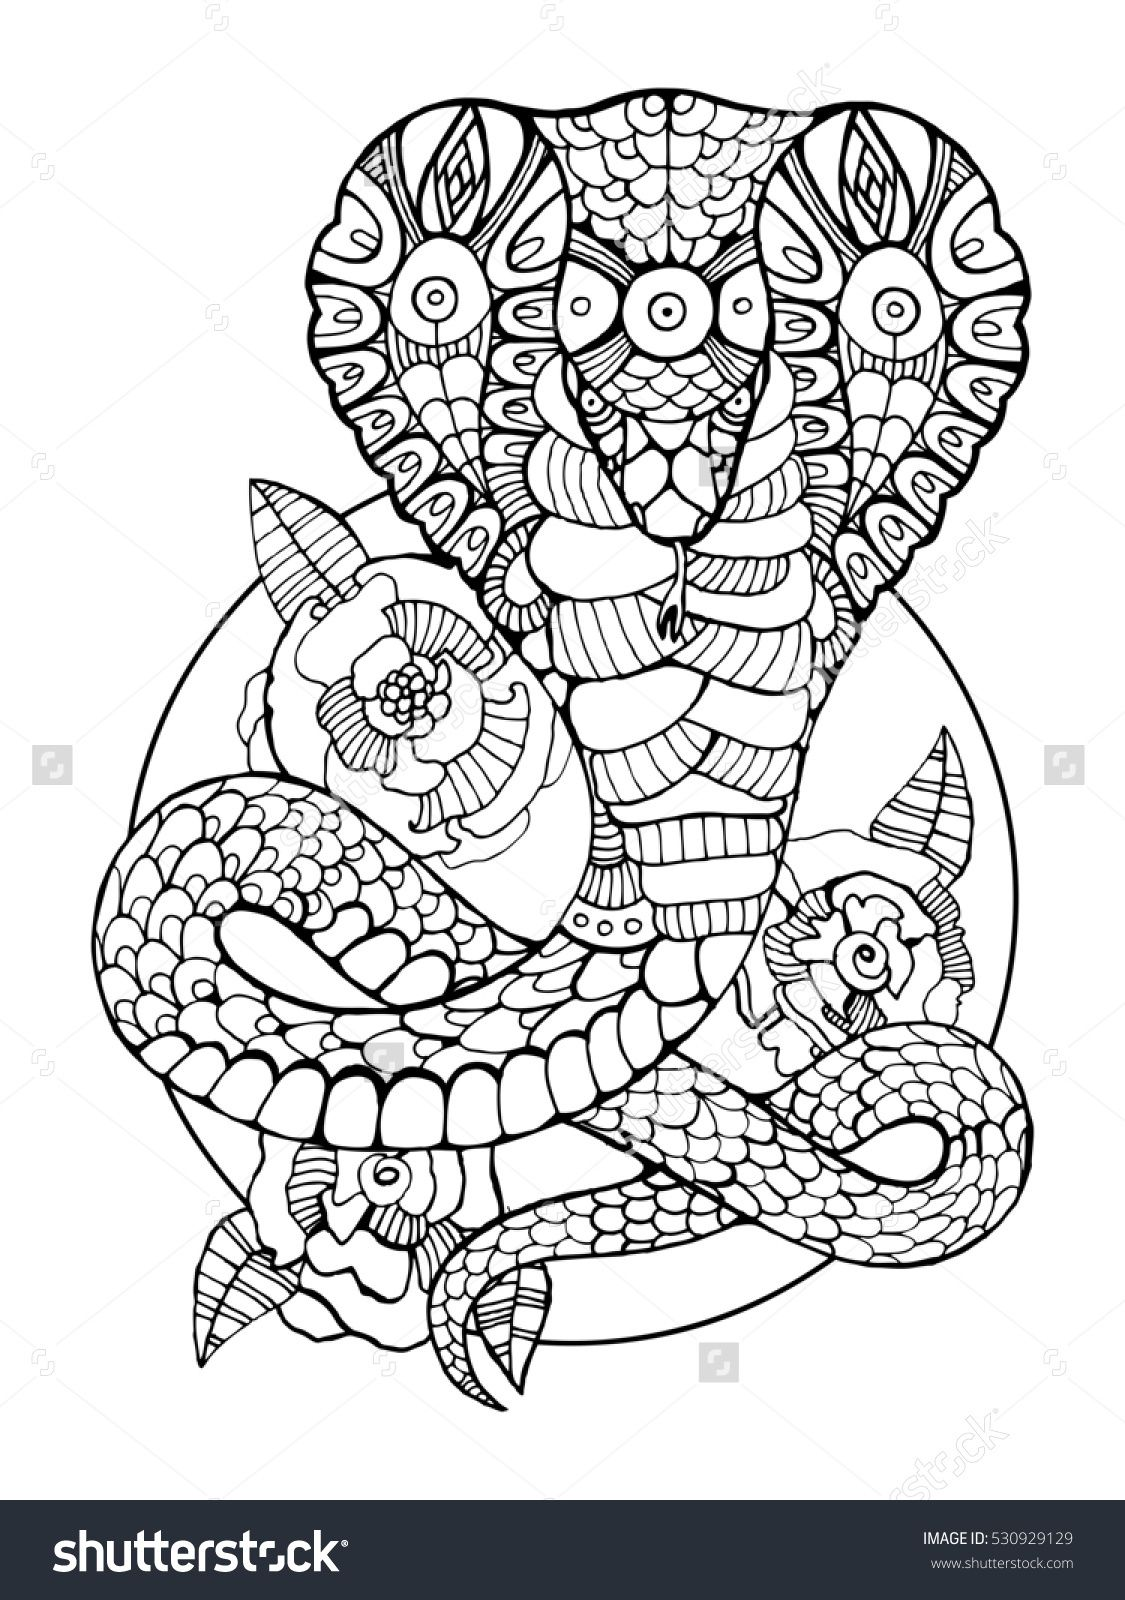 Cobra snake coloring book for adults raster illustration. Anti ...